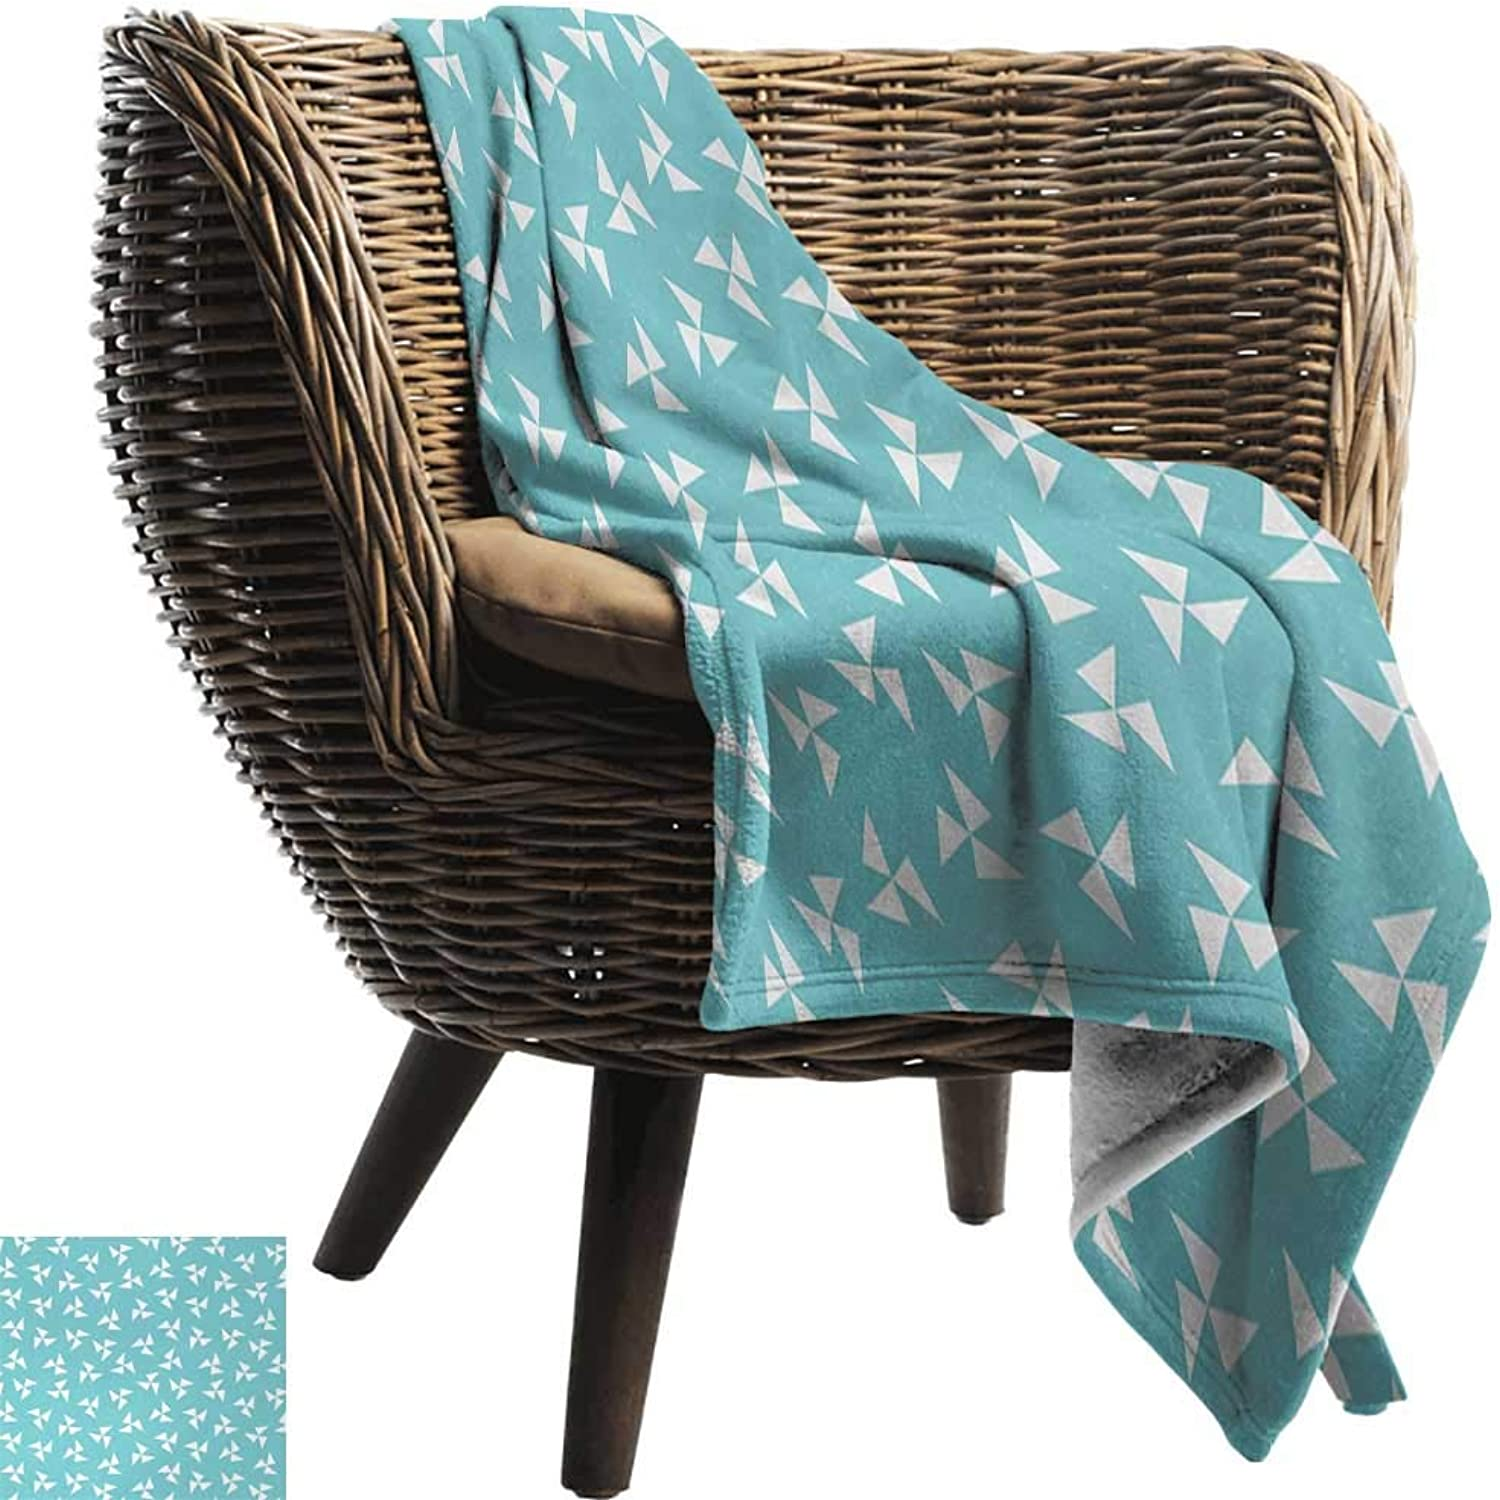 AndyTours Weighted Blanket for Kids,Aqua,Hipster Geometrical Pattern with Pinwheel Triangles and Slightly Grunge Look,Turquoise White,Weighted Blanket for Adults Kids, Better Deeper Sleep 50 x70